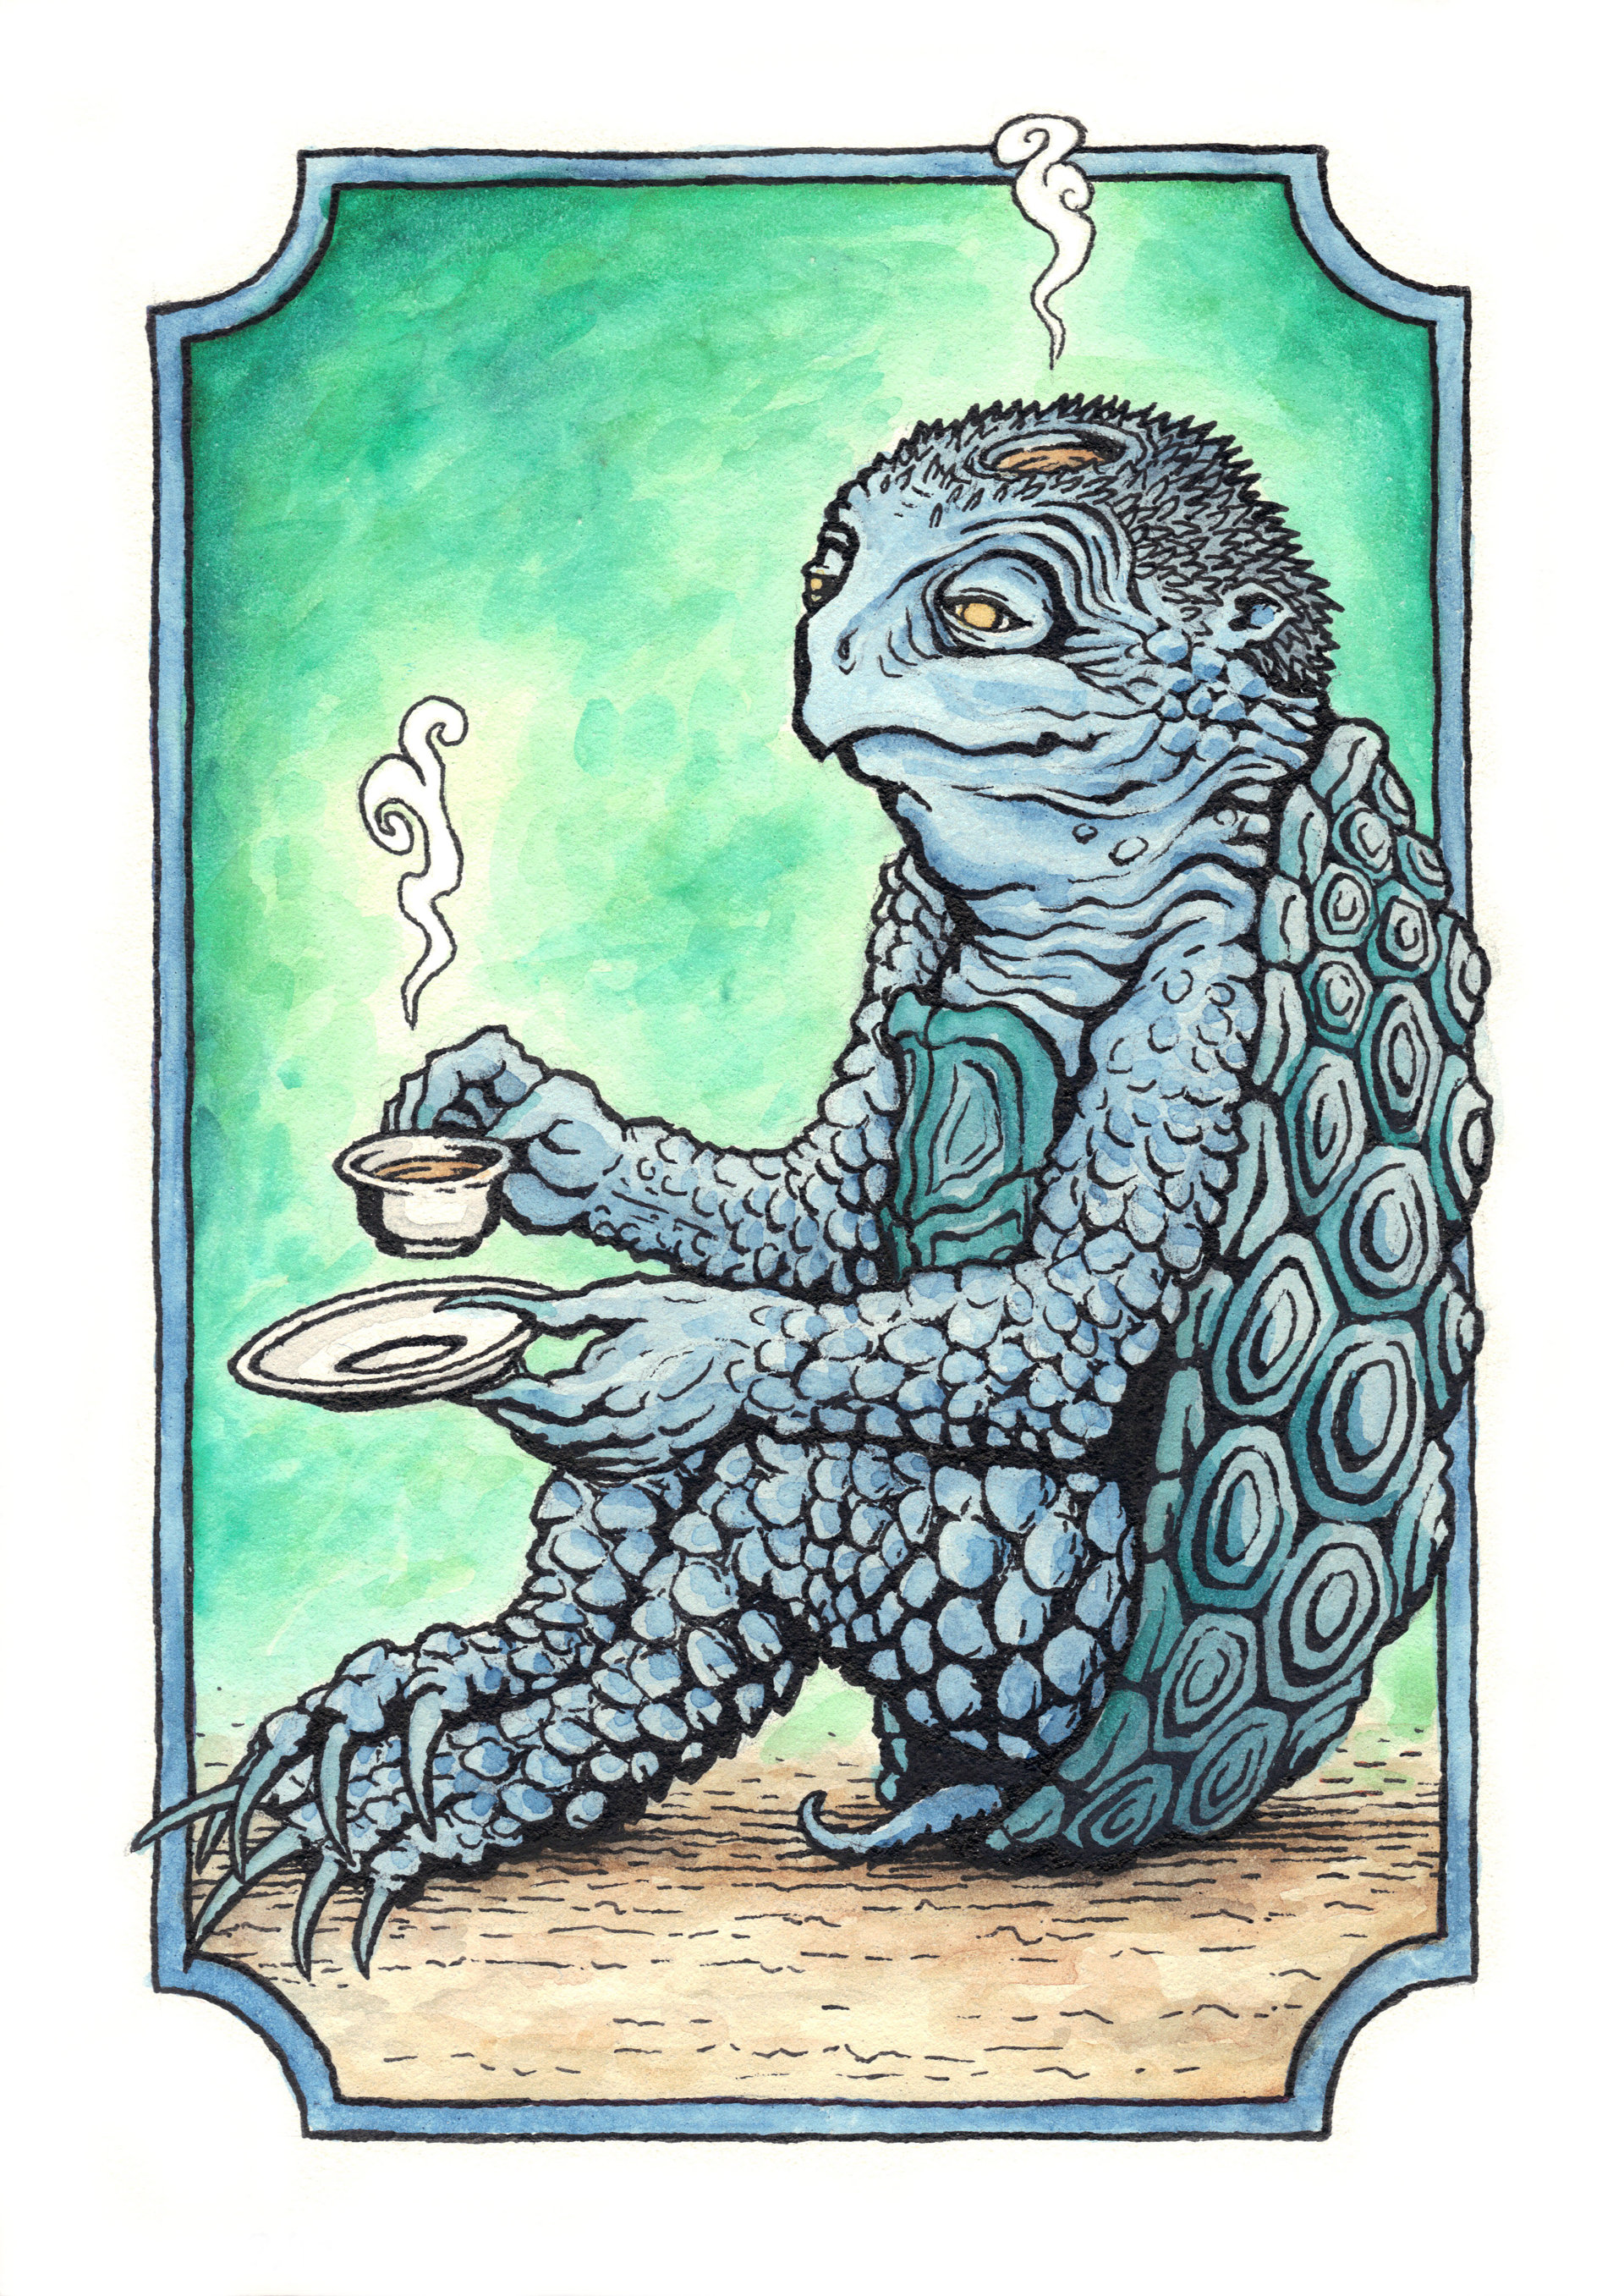 Patrick weck kappa tea watercolor2